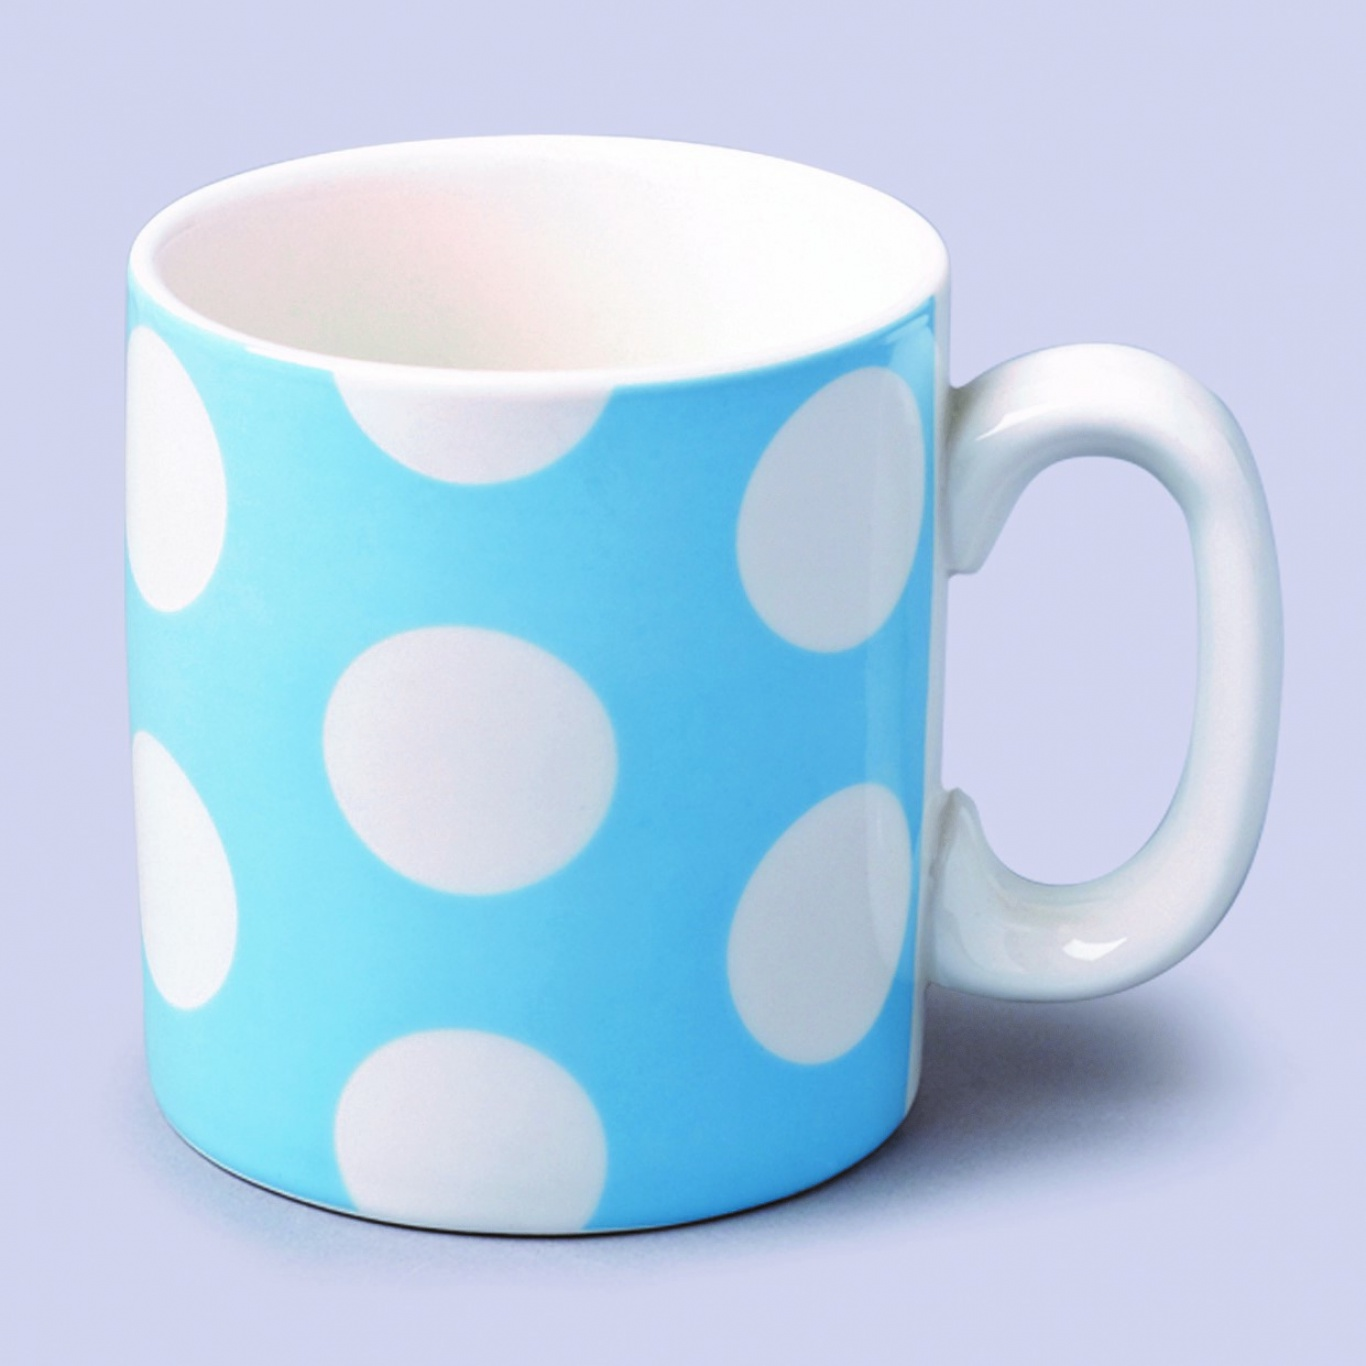 Image of Large Mug Blue Spot 0.7 pint